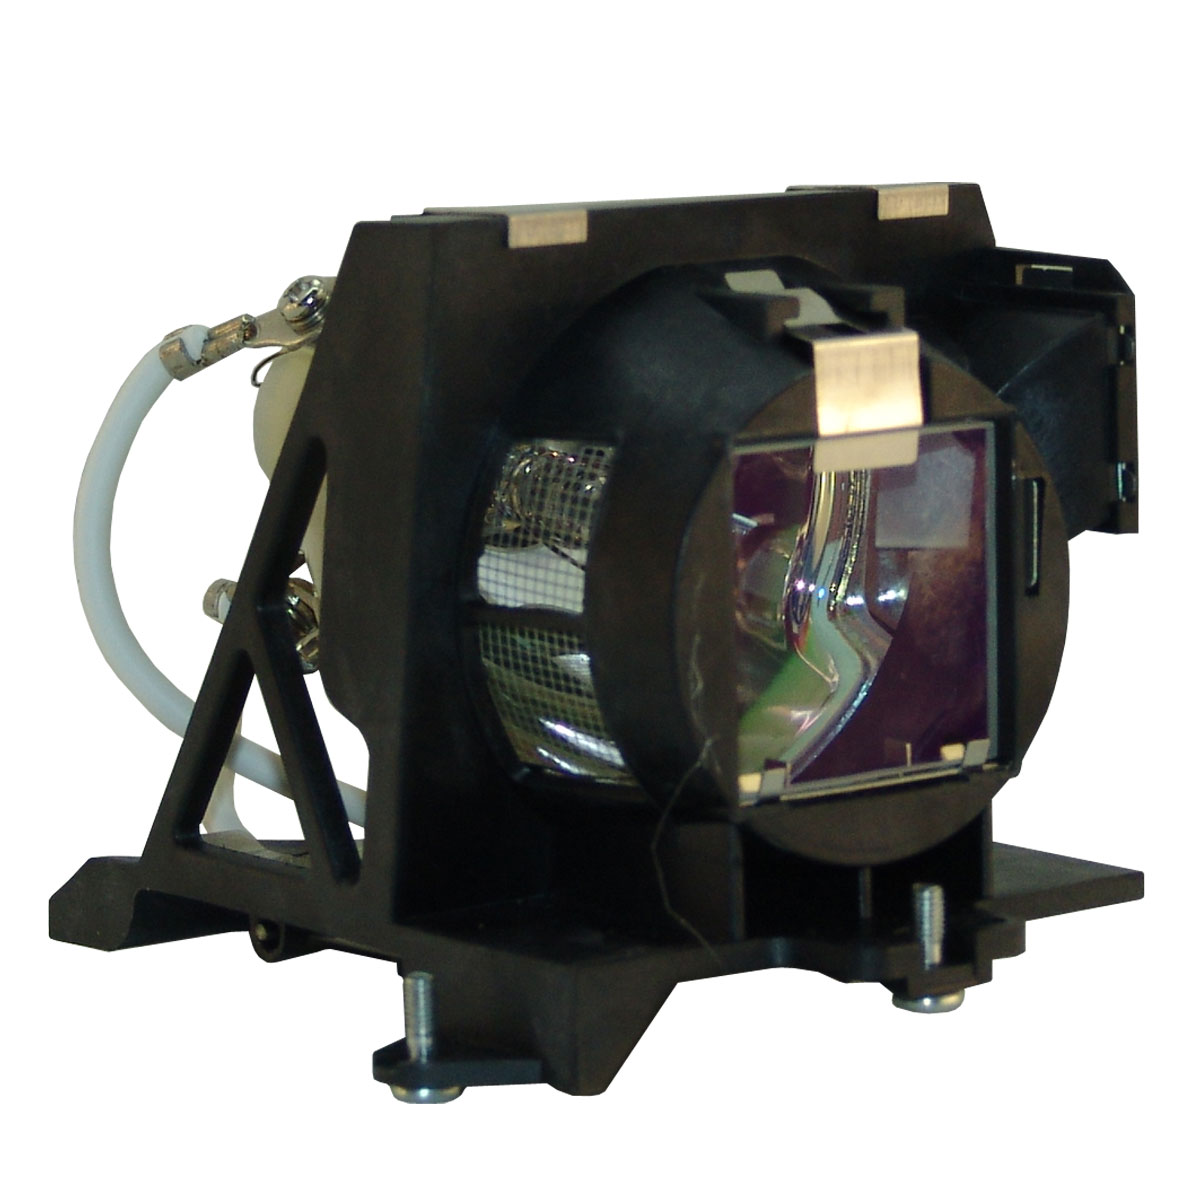 Original Philips Projector Lamp Replacement for Digital Projection 107-750 (Bulb Only) - image 2 de 5